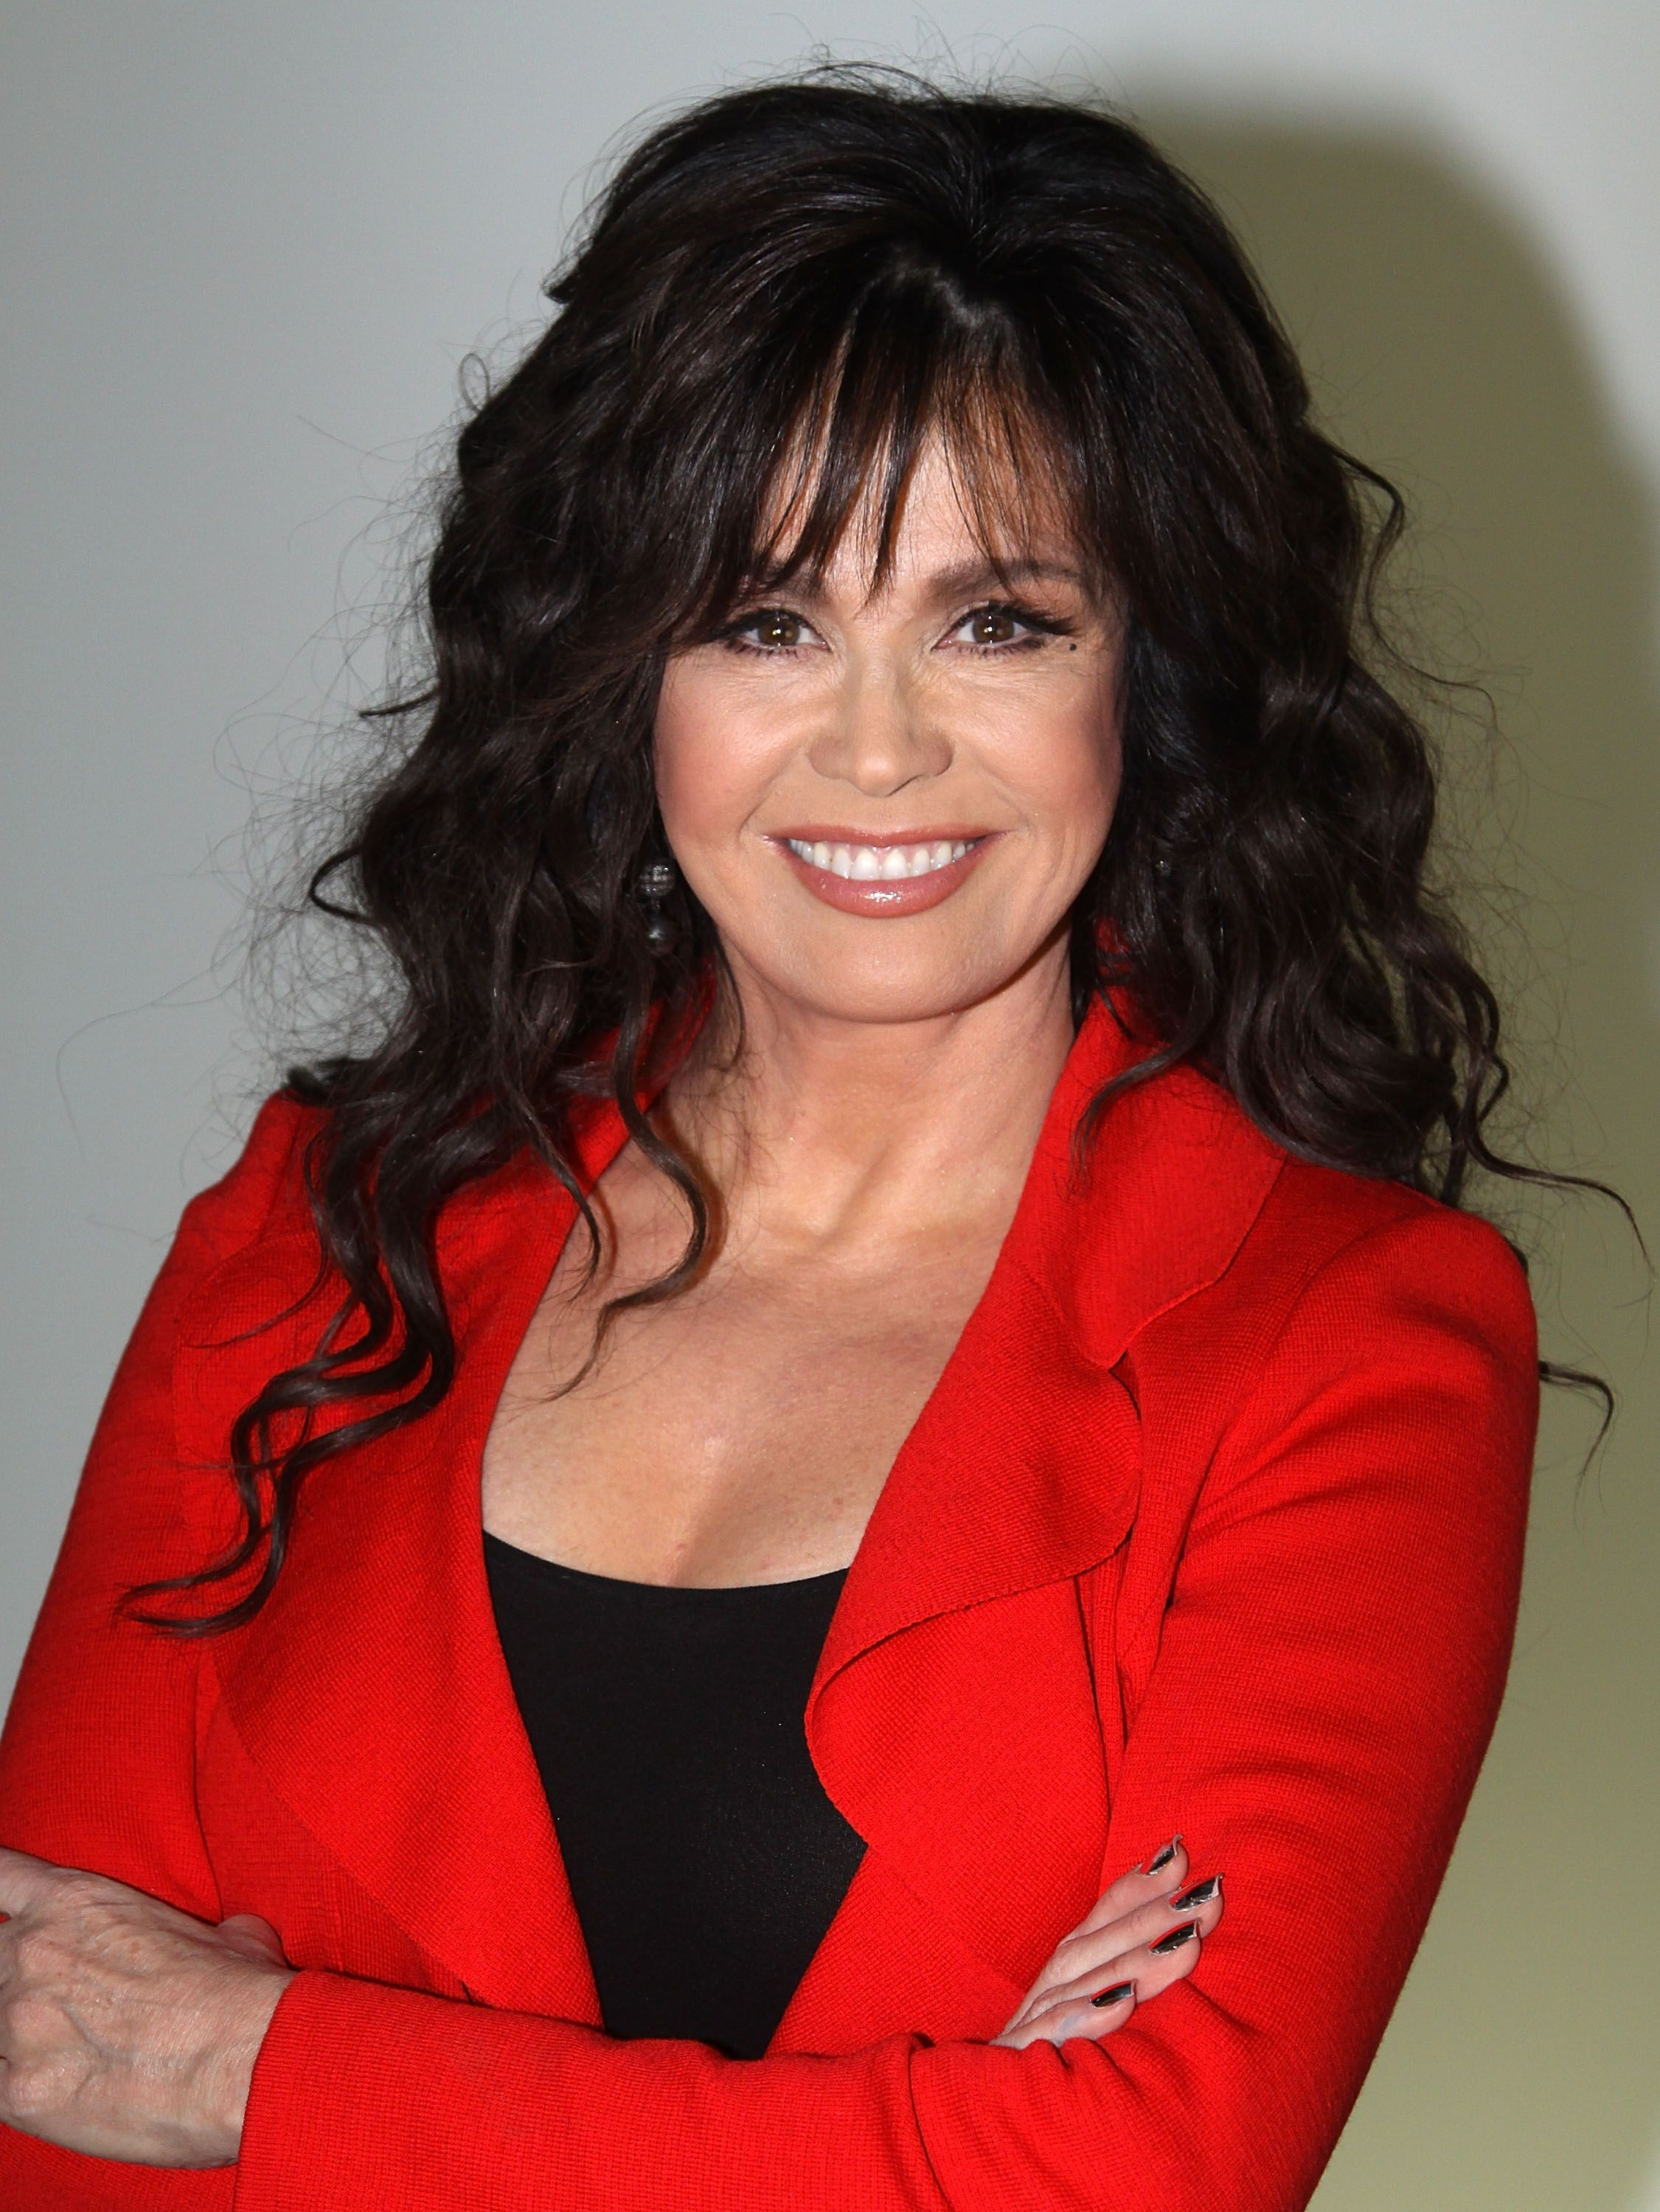 Marie Osmond during her visit to Broadway.com at The Broadway.com Studios on December 8, 2010 in New York City. | Source: Getty Images